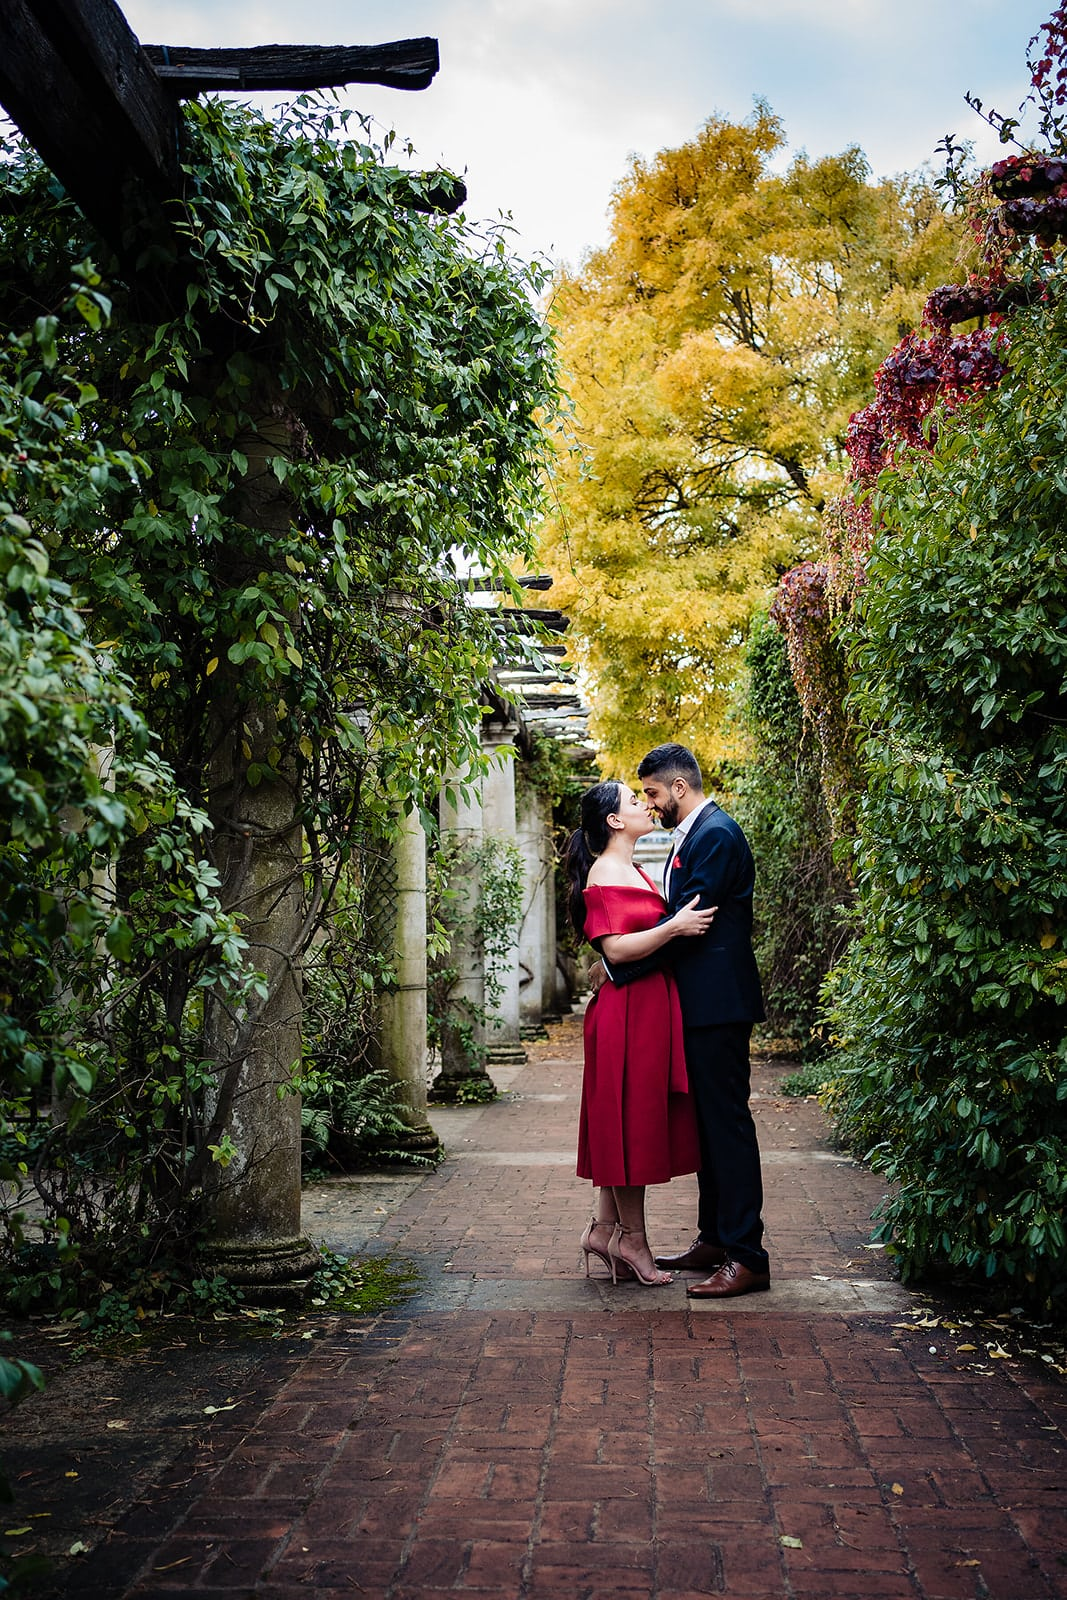 Couple kiss in the column-framed walkway at London's Hill Gardens and Pergola